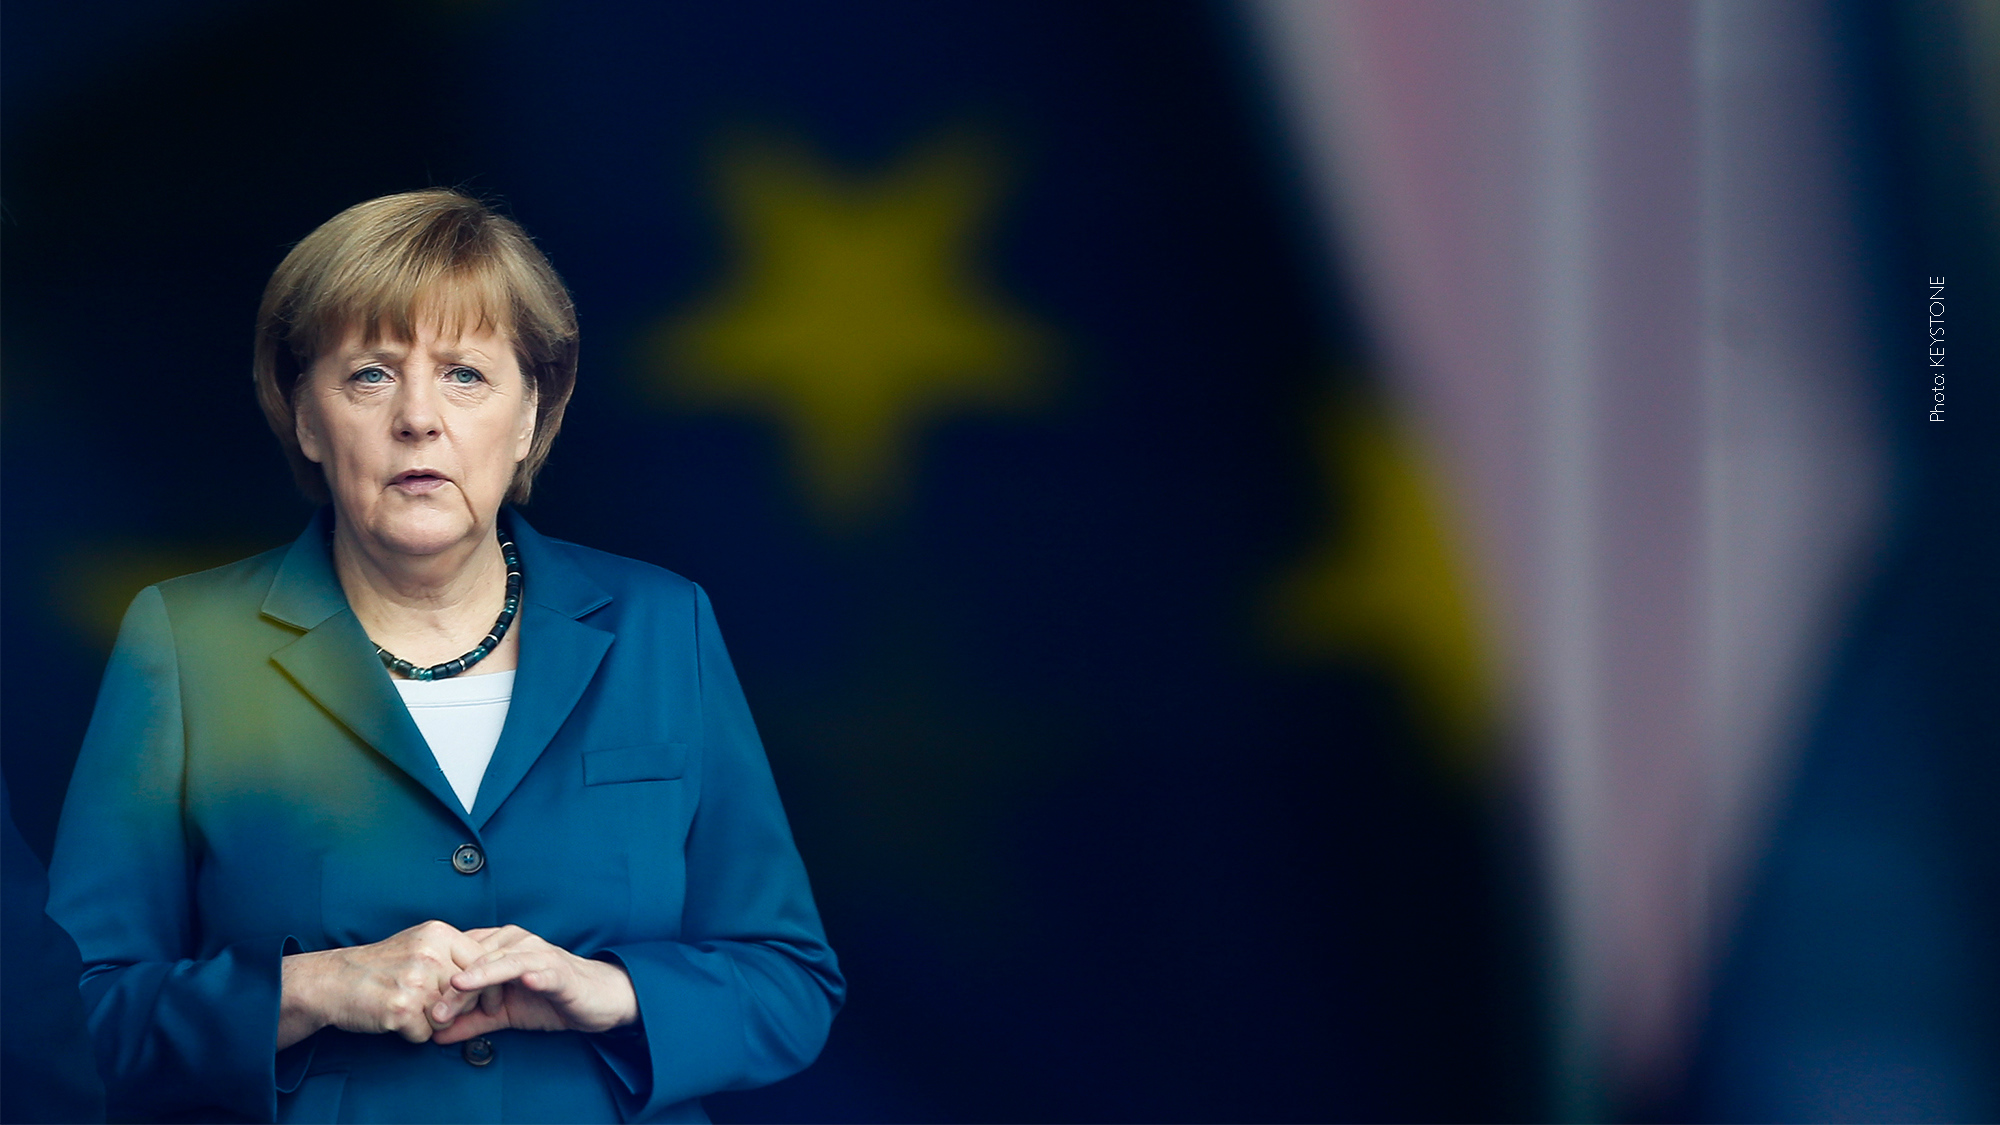 Bundestag elections 2017: Angela Merkel – the sempiternal chancellor?; Copyright: Keystone